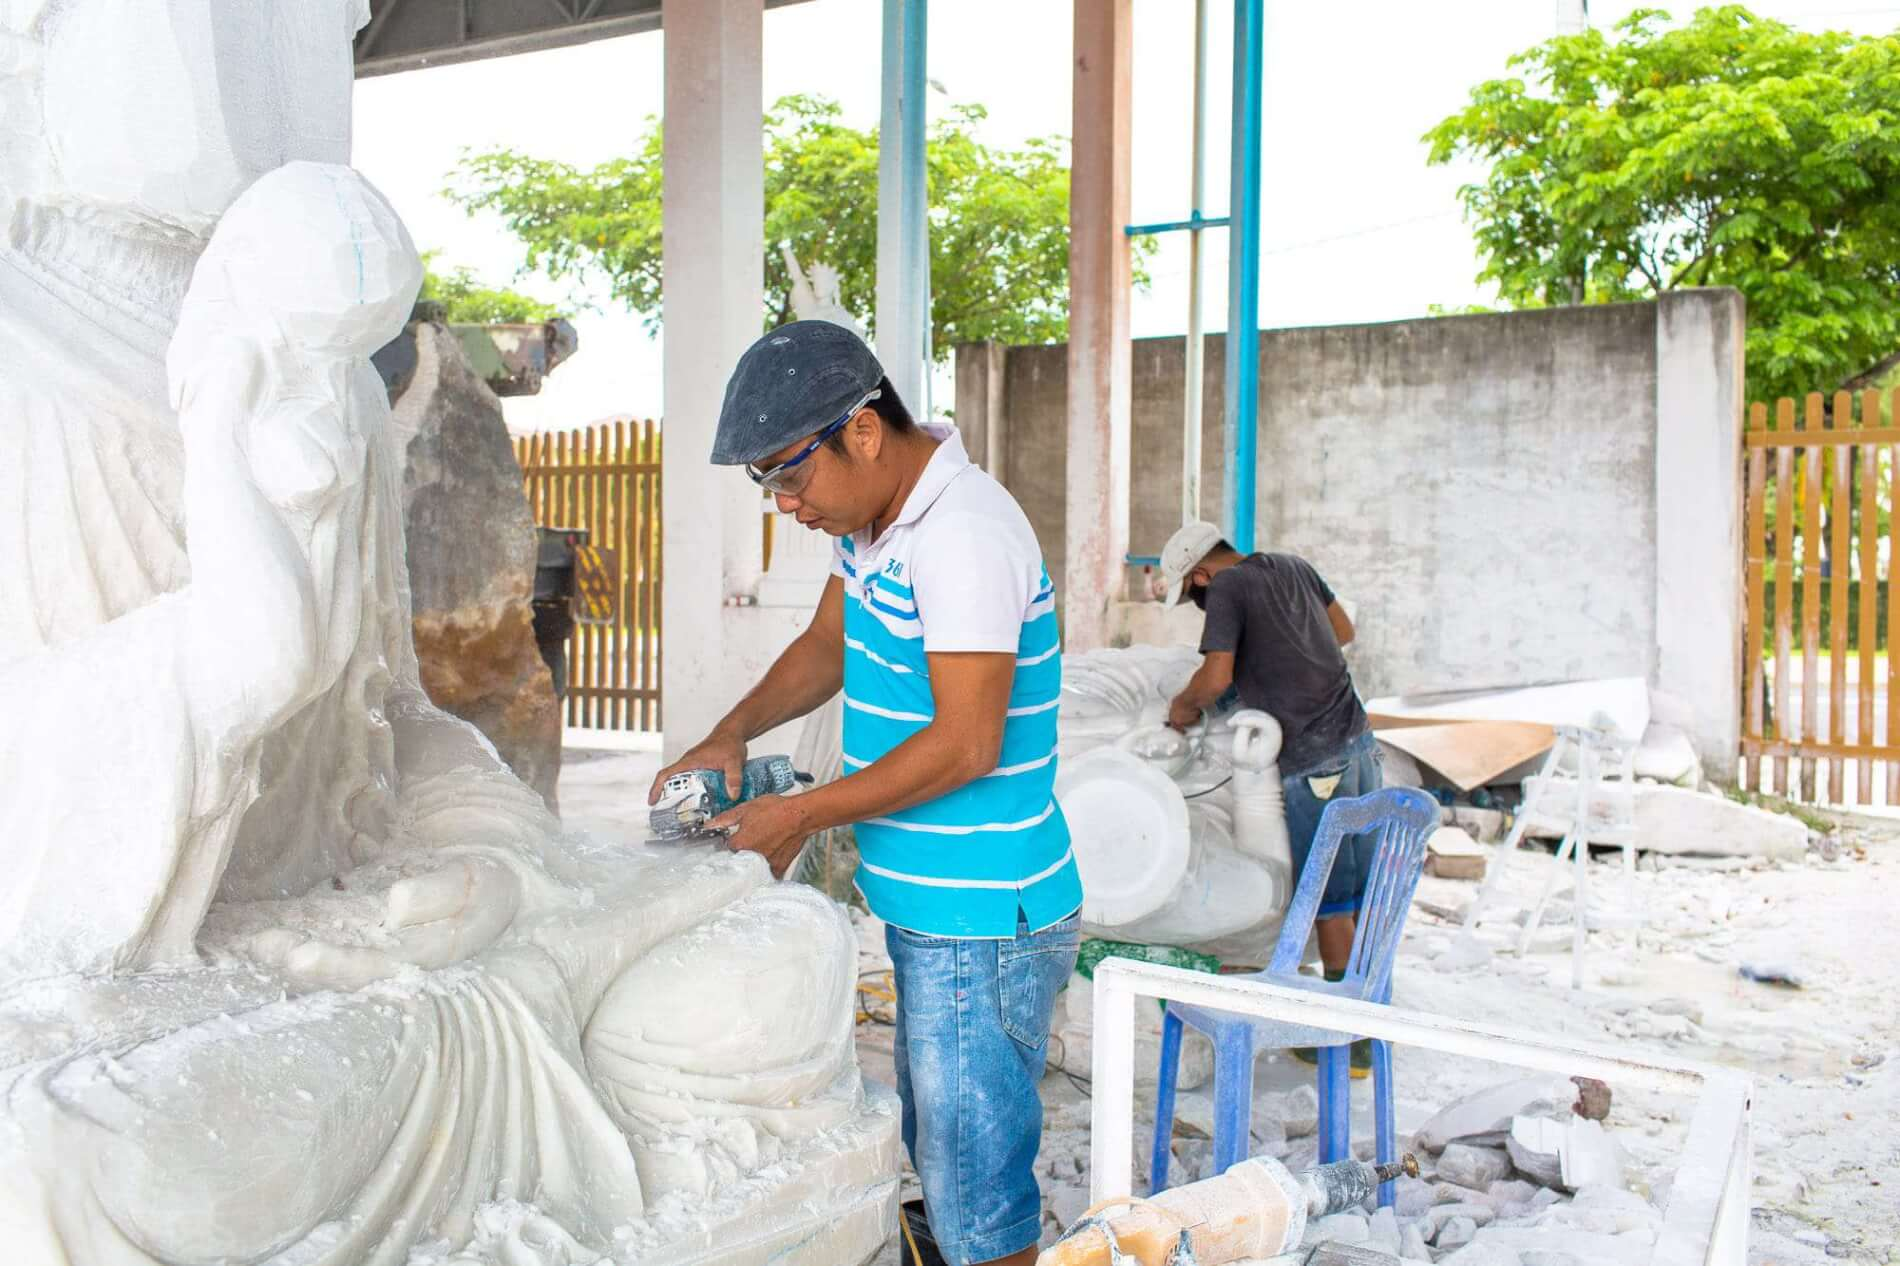 Marble Mountains sculptors